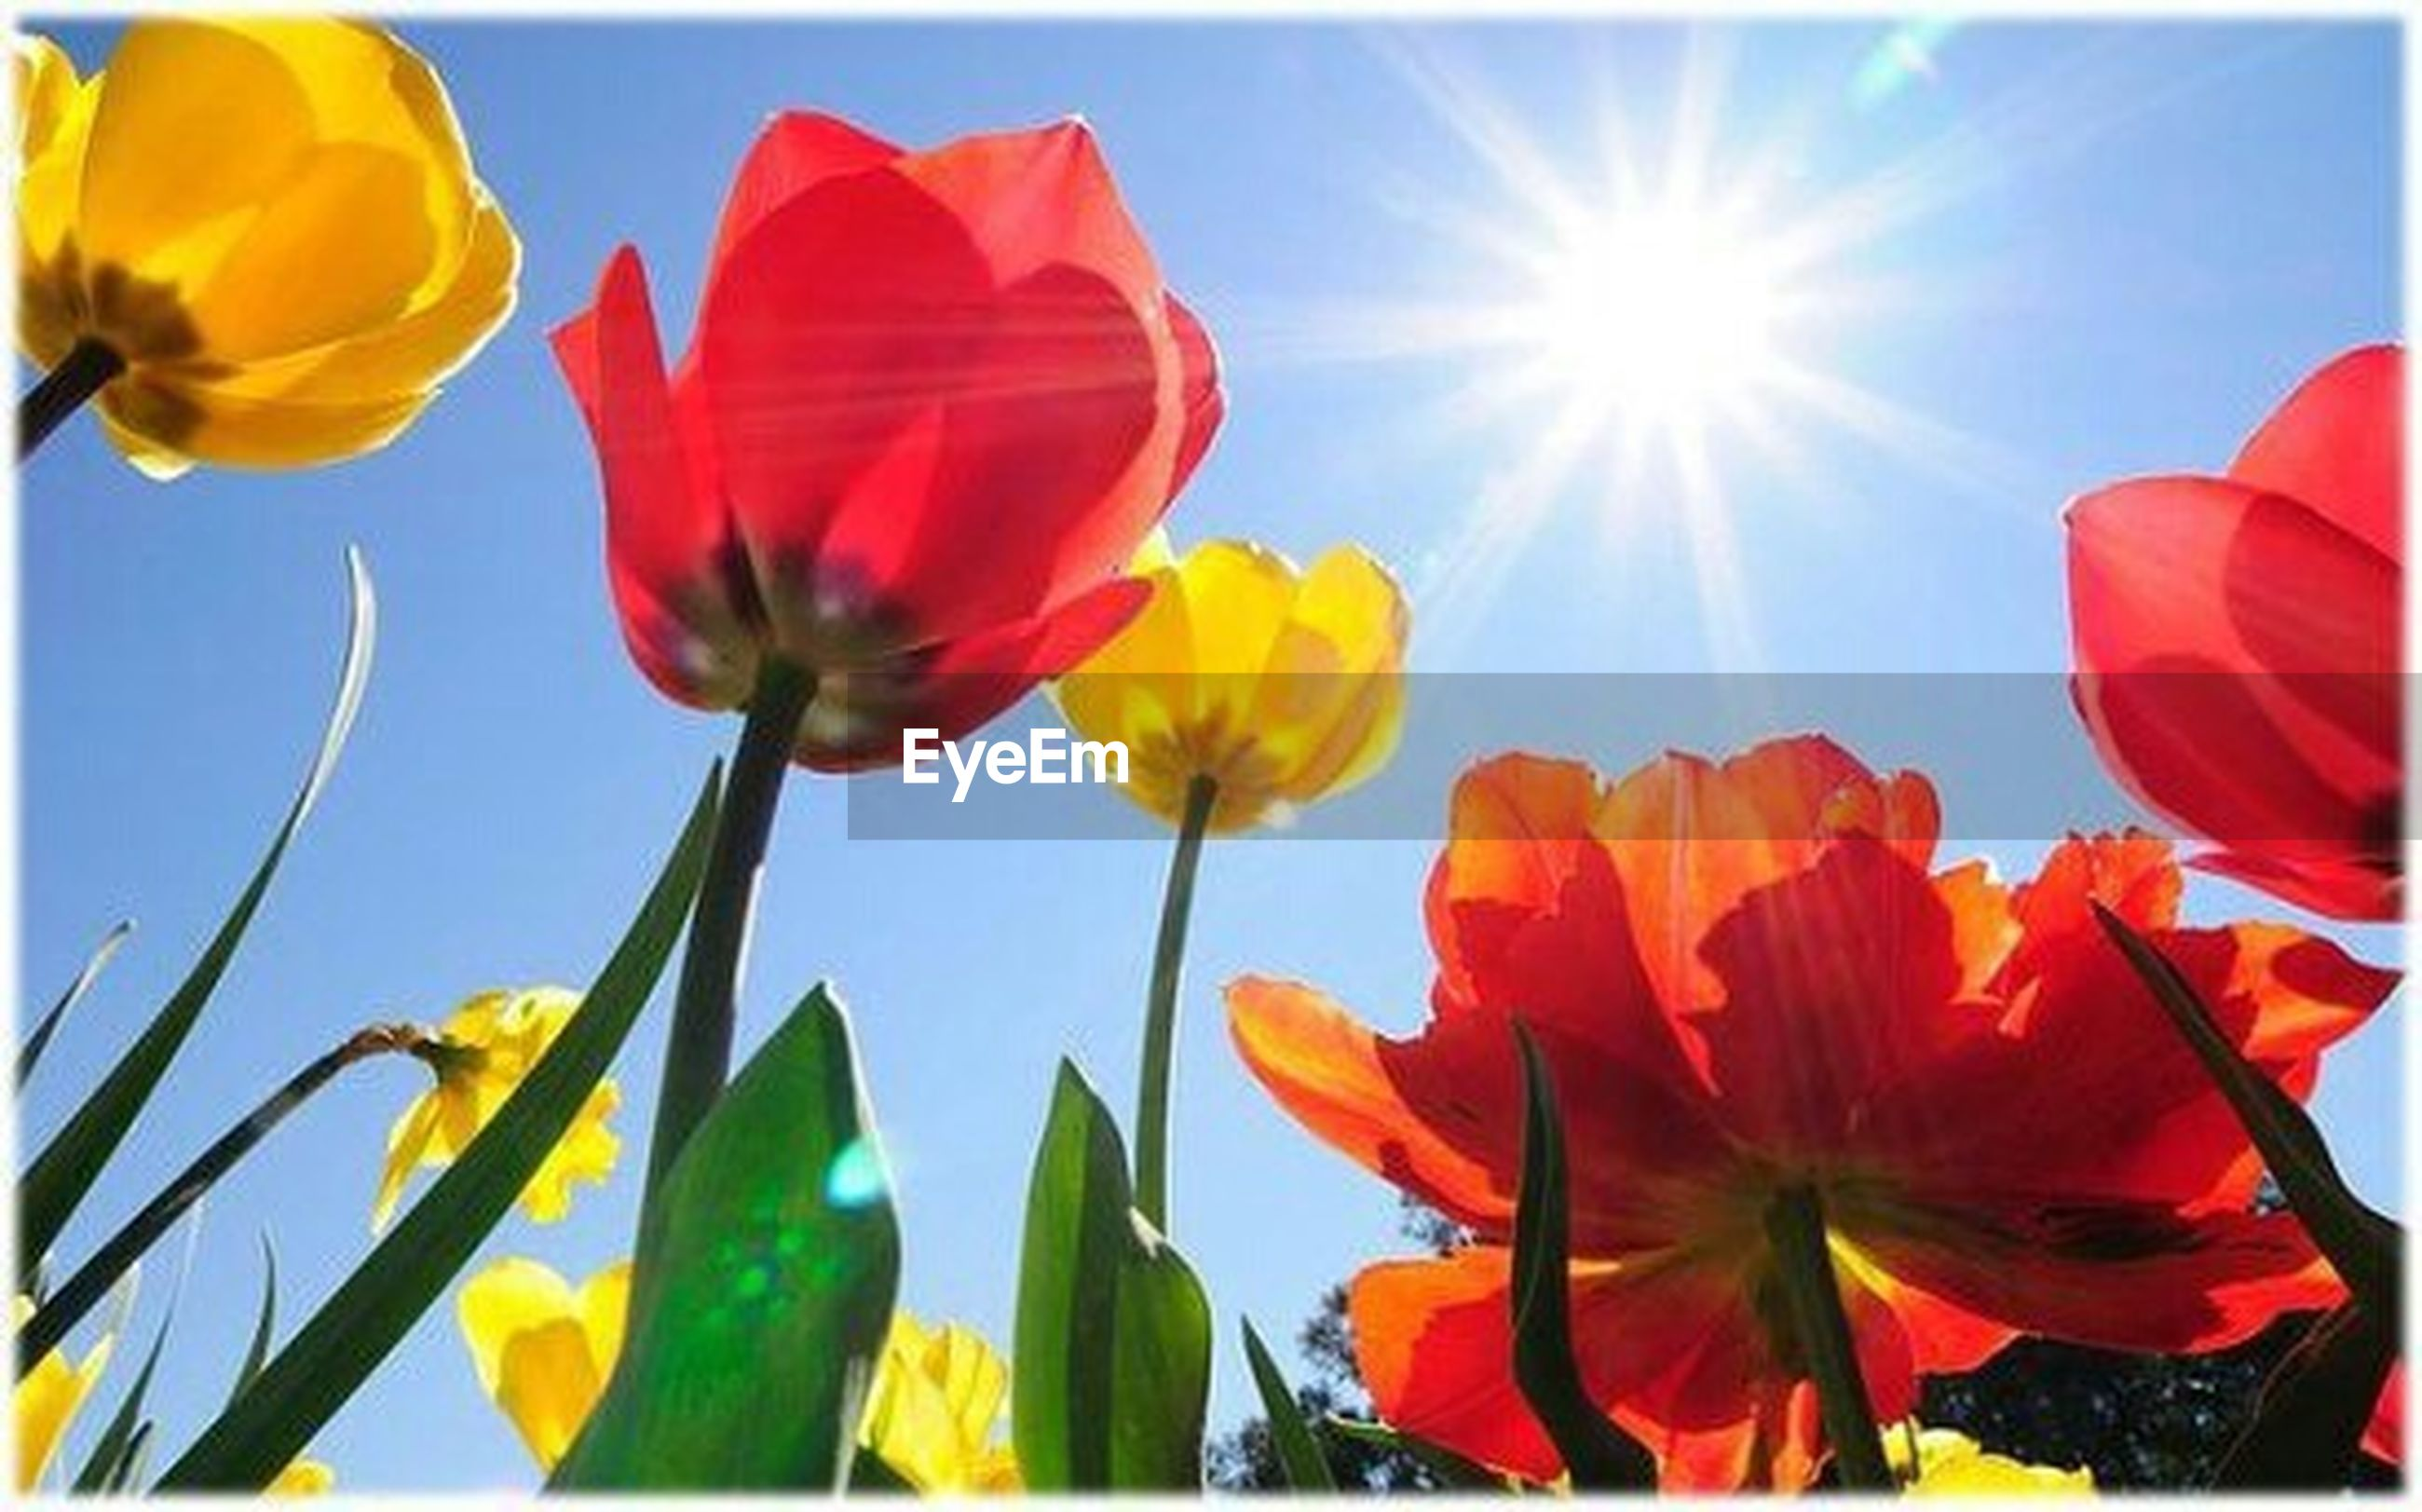 flower, petal, fragility, freshness, sun, sunlight, low angle view, beauty in nature, growth, flower head, clear sky, blooming, nature, sunbeam, sky, yellow, plant, red, blue, tulip